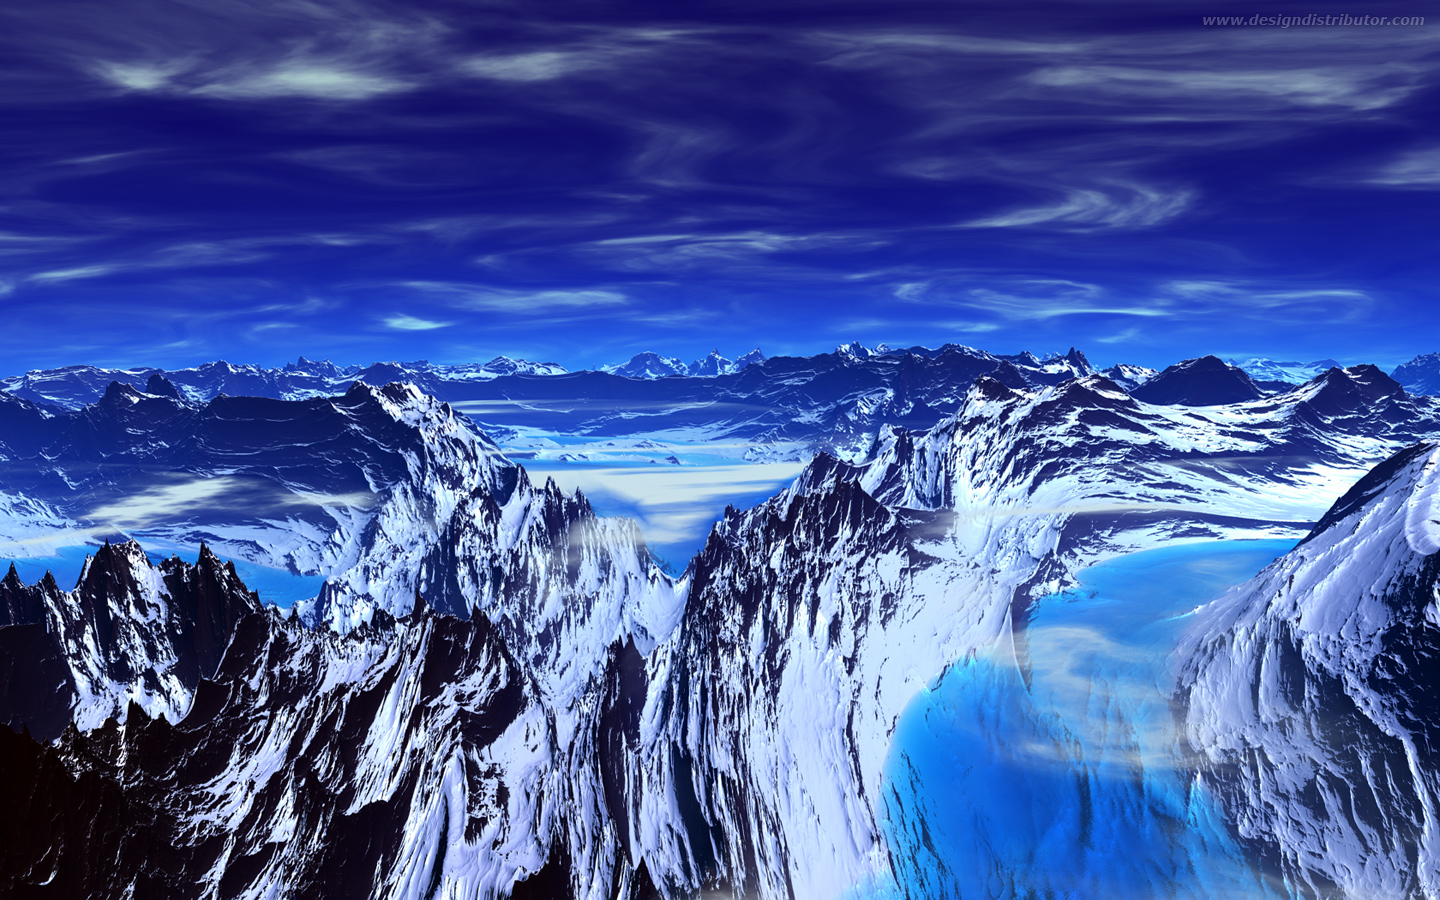 HD wallpapers blue HD wide wallpapers 1440x900 1440x900